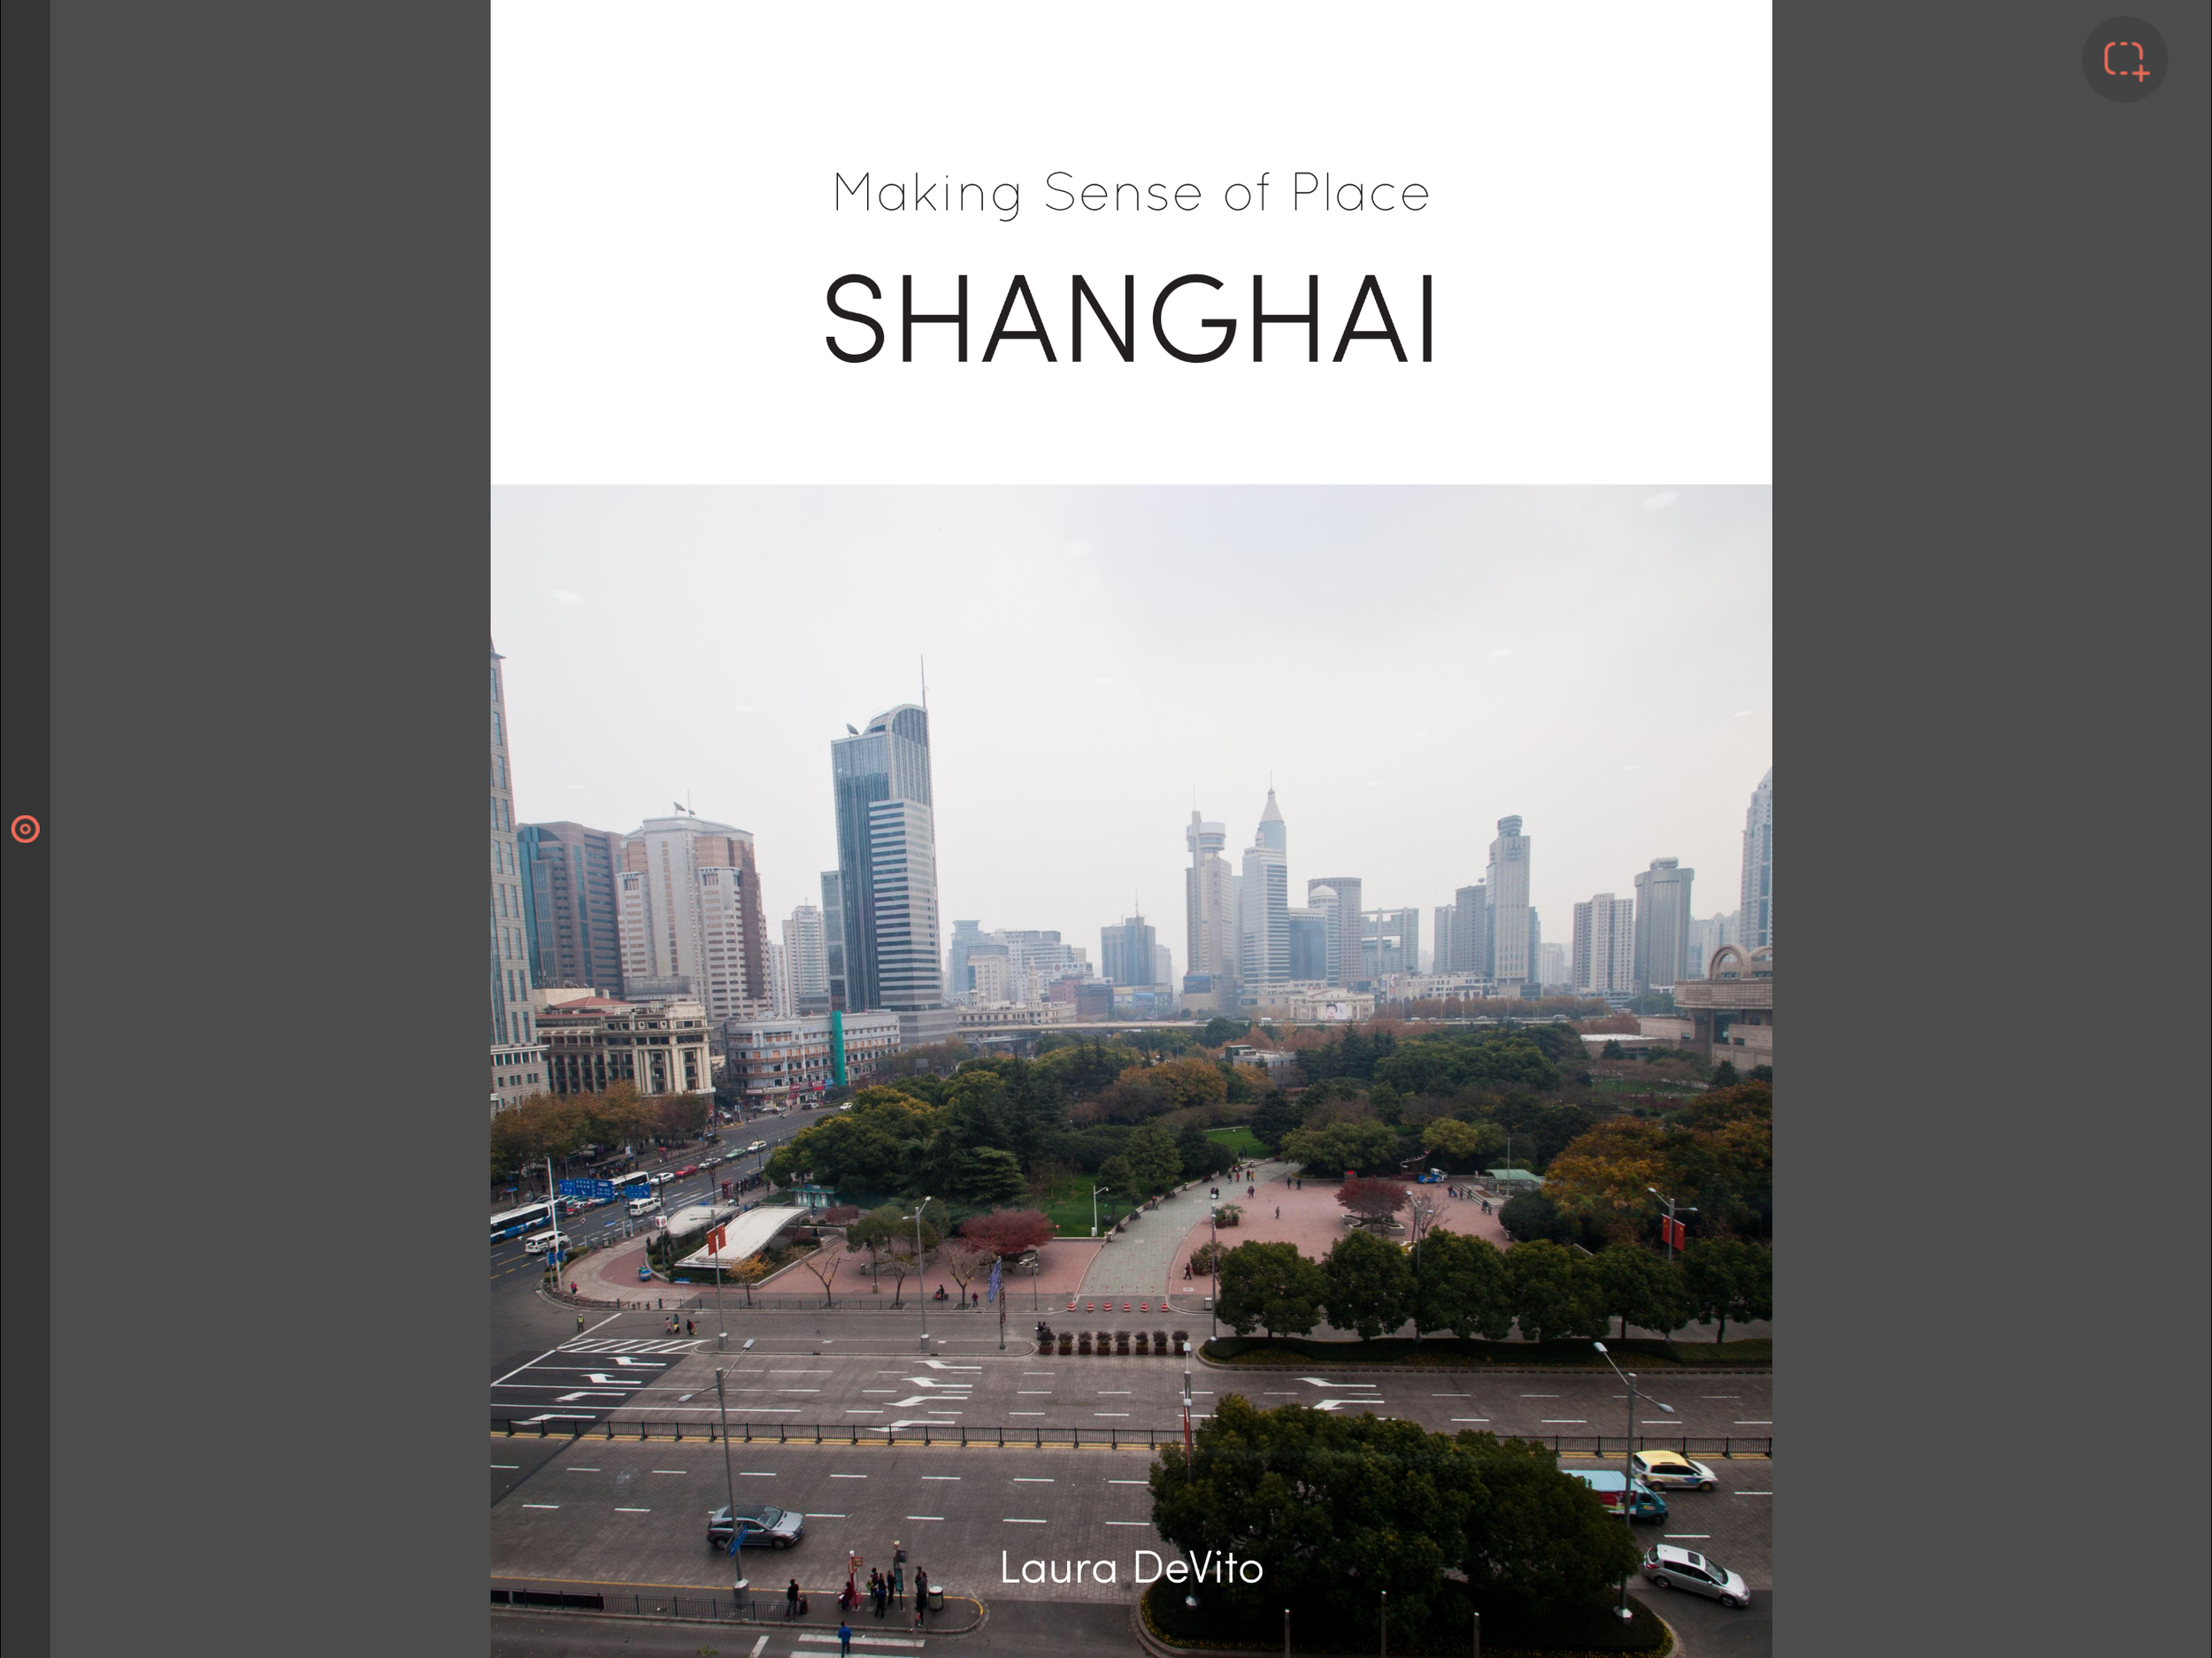 """""""Making Sense of Place: Shanghai"""" cover from online book 2016 8.5 x 11 inches Photography, Graphic Design, and Writing Description:This is the first in an online meditative book series exploring our connection with place."""